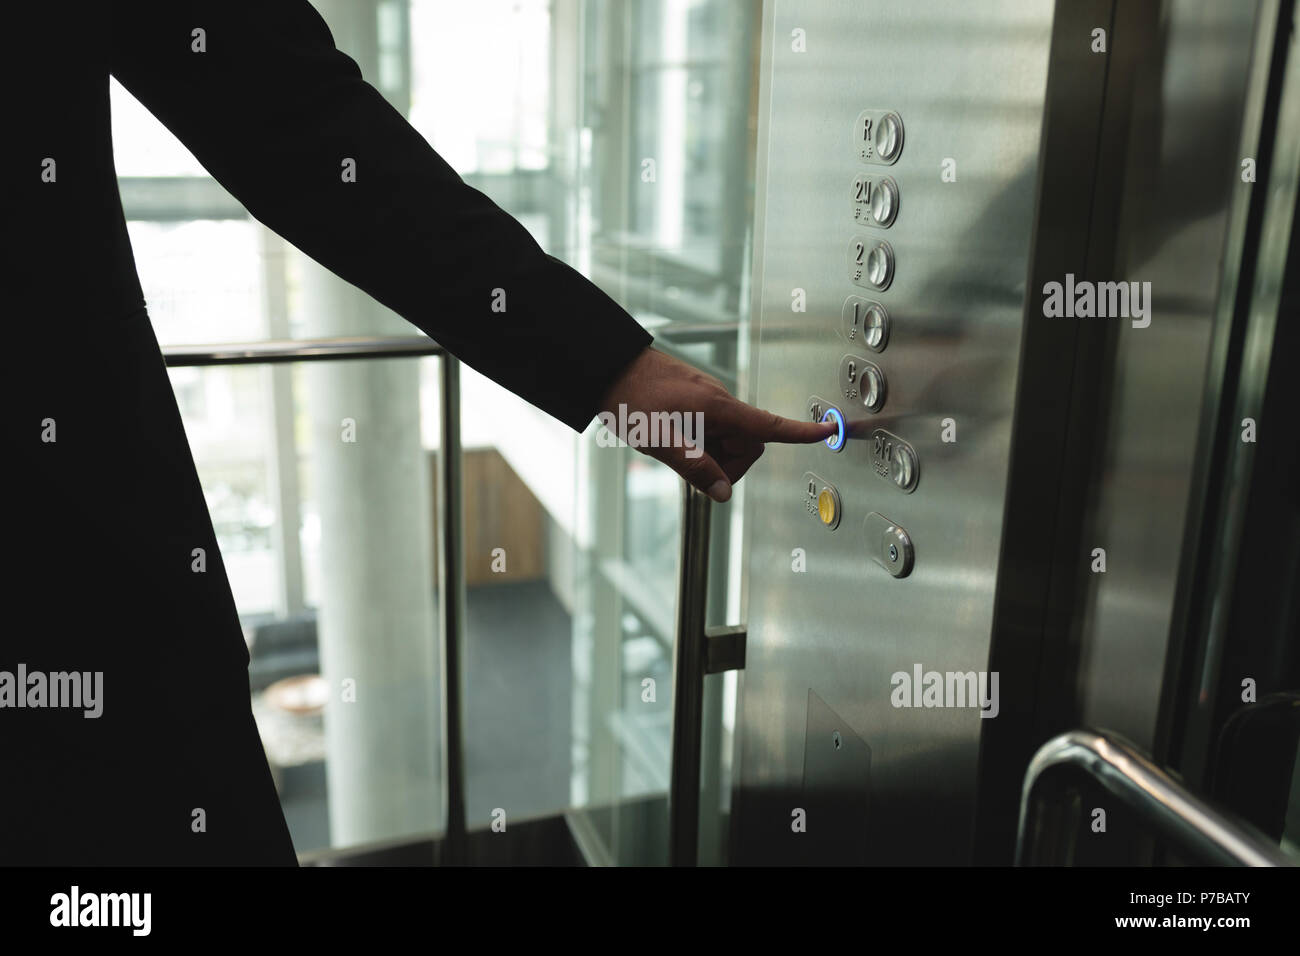 Businessperson pressing a button in the elevator - Stock Image